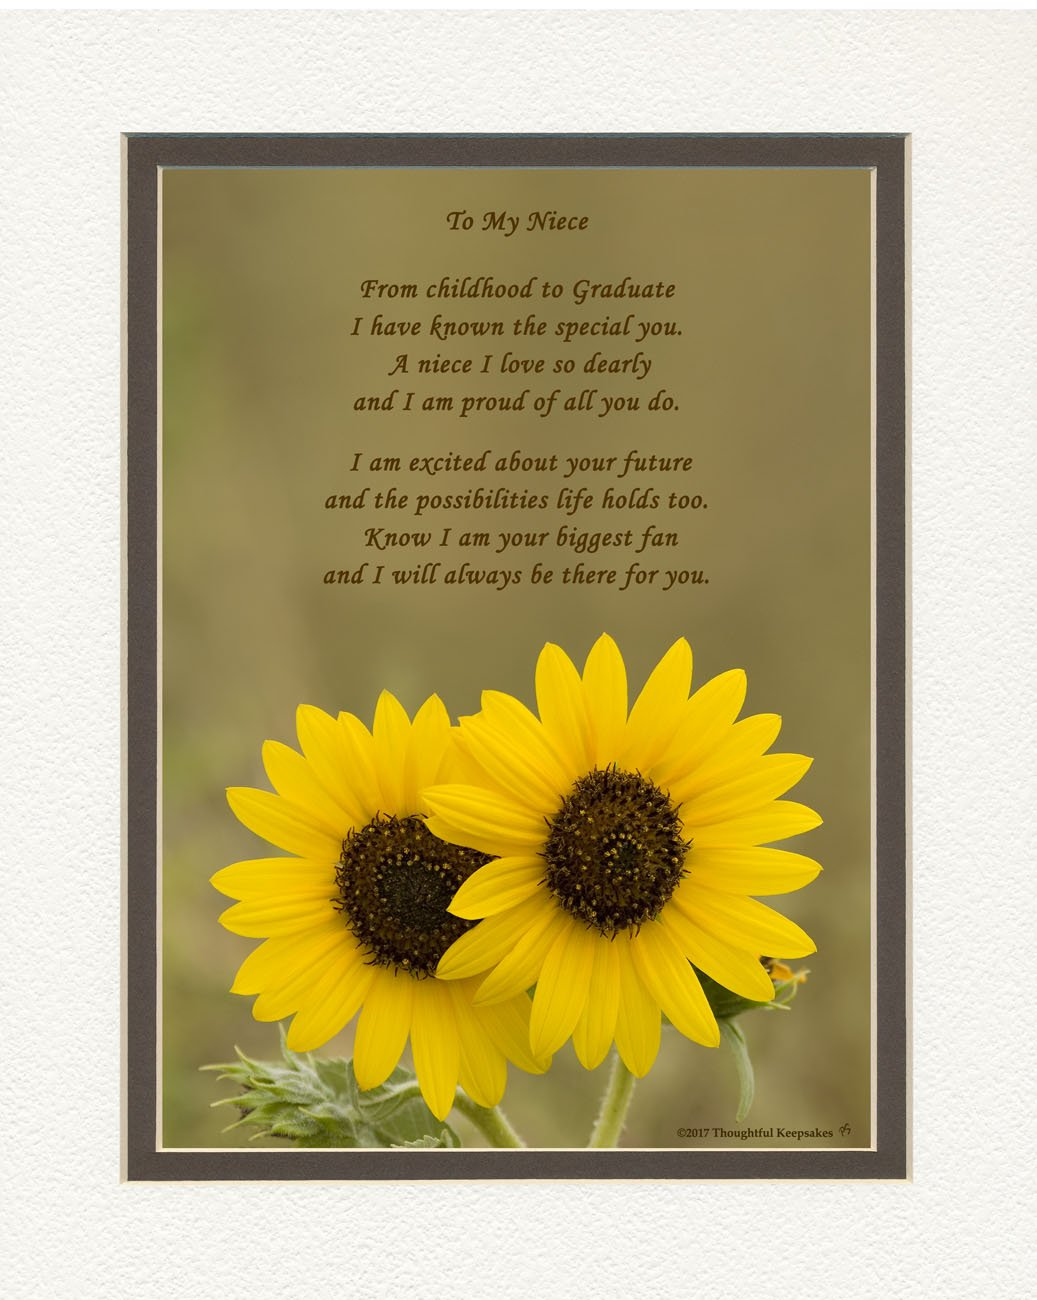 Graduation Gifts Niece, Sunflowers Photo with From Childhood to Graduate Poem, 8x10 Double Matted. Special Keepsake for Niece, Unique College and High School Grad Gifts for Niece.